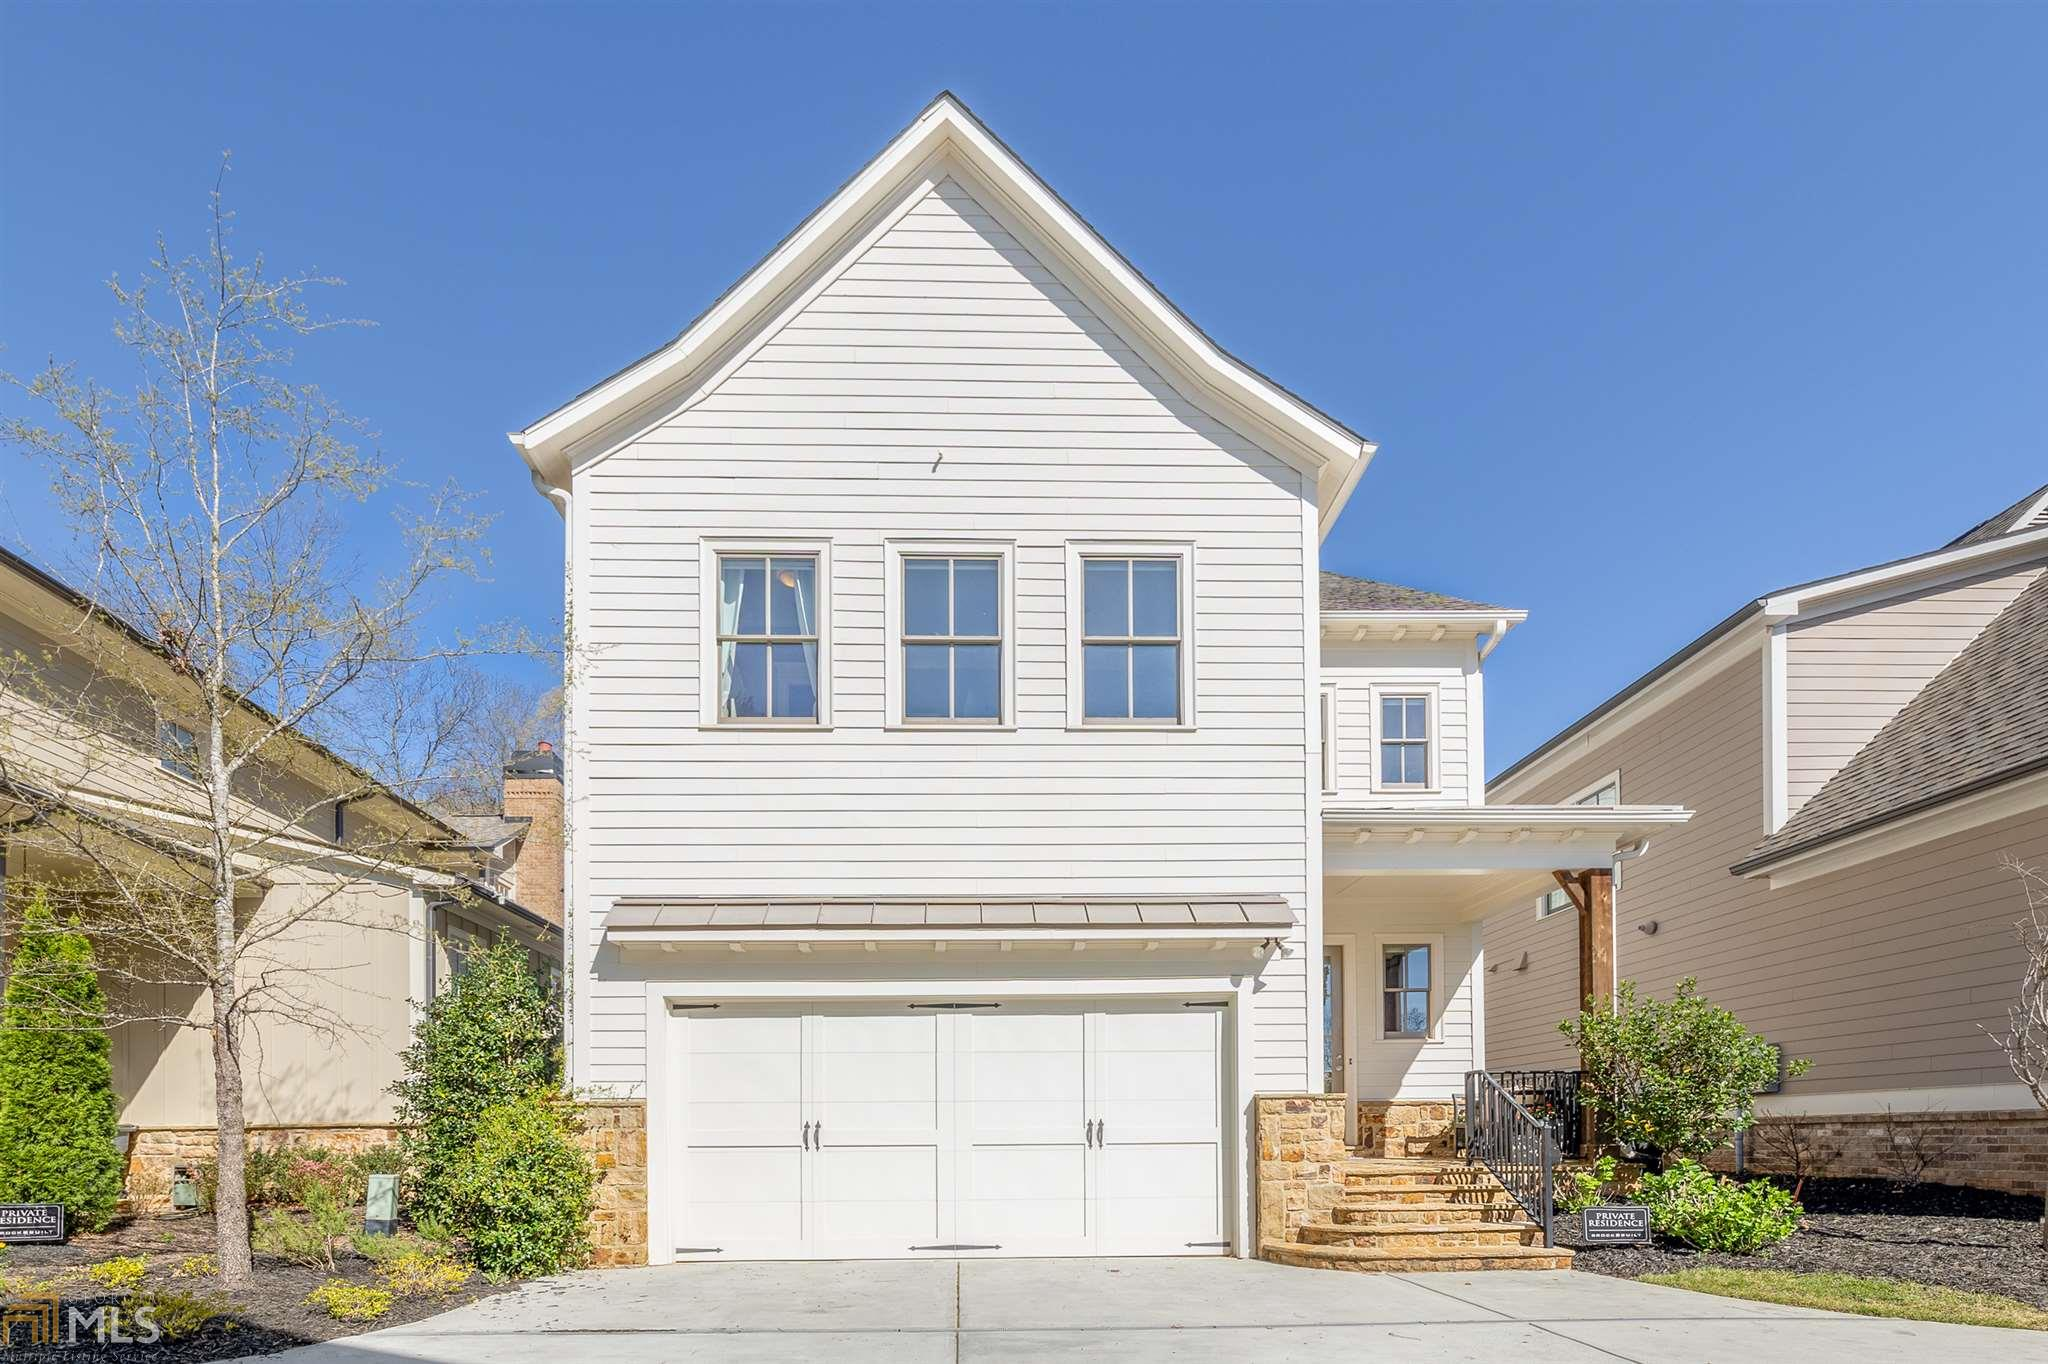 Image for property 5630 Vineyard Park Trl, Norcross, GA 30071